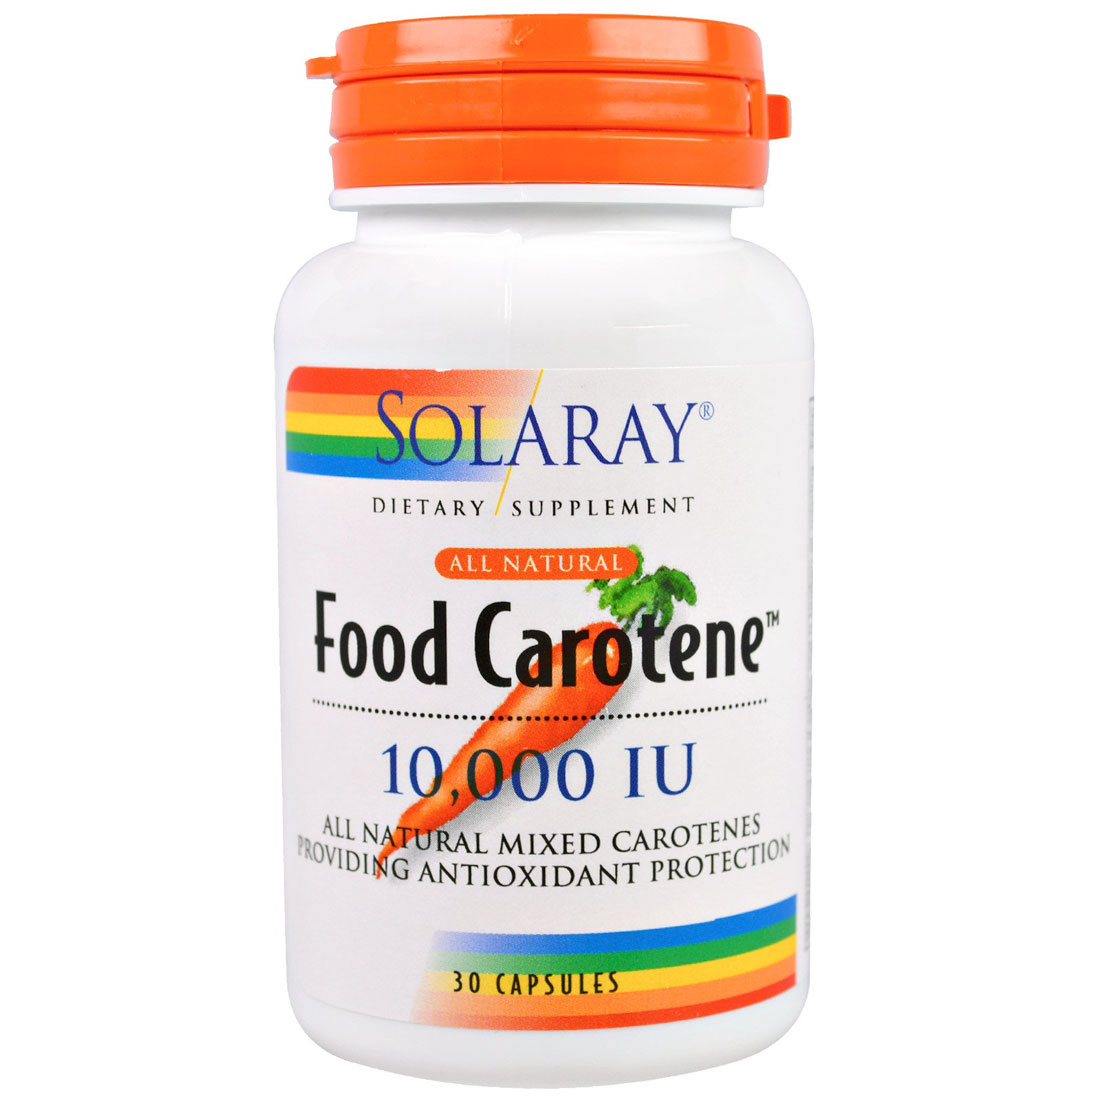 Image of a Bottle of Solaray Food Carotene All Natural 10,000 IU Softgels (Vitamin A)